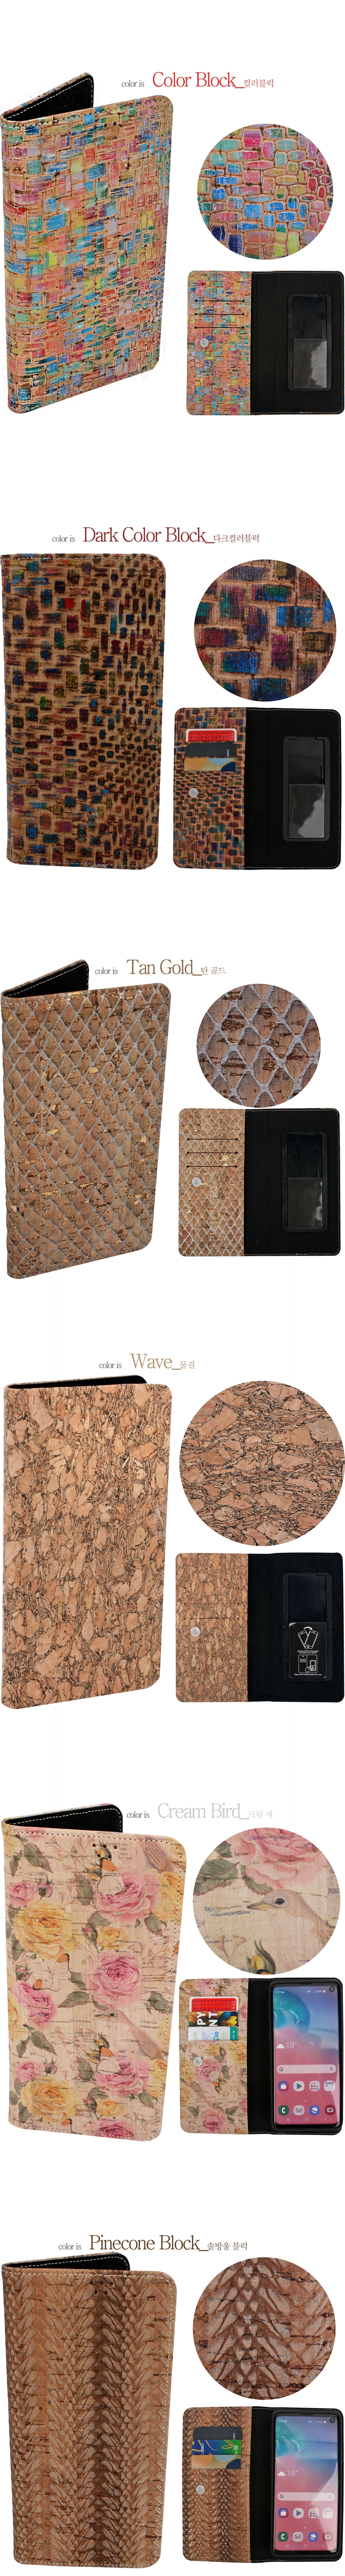 Copi – Premium Italian Cork – Mobile phone case